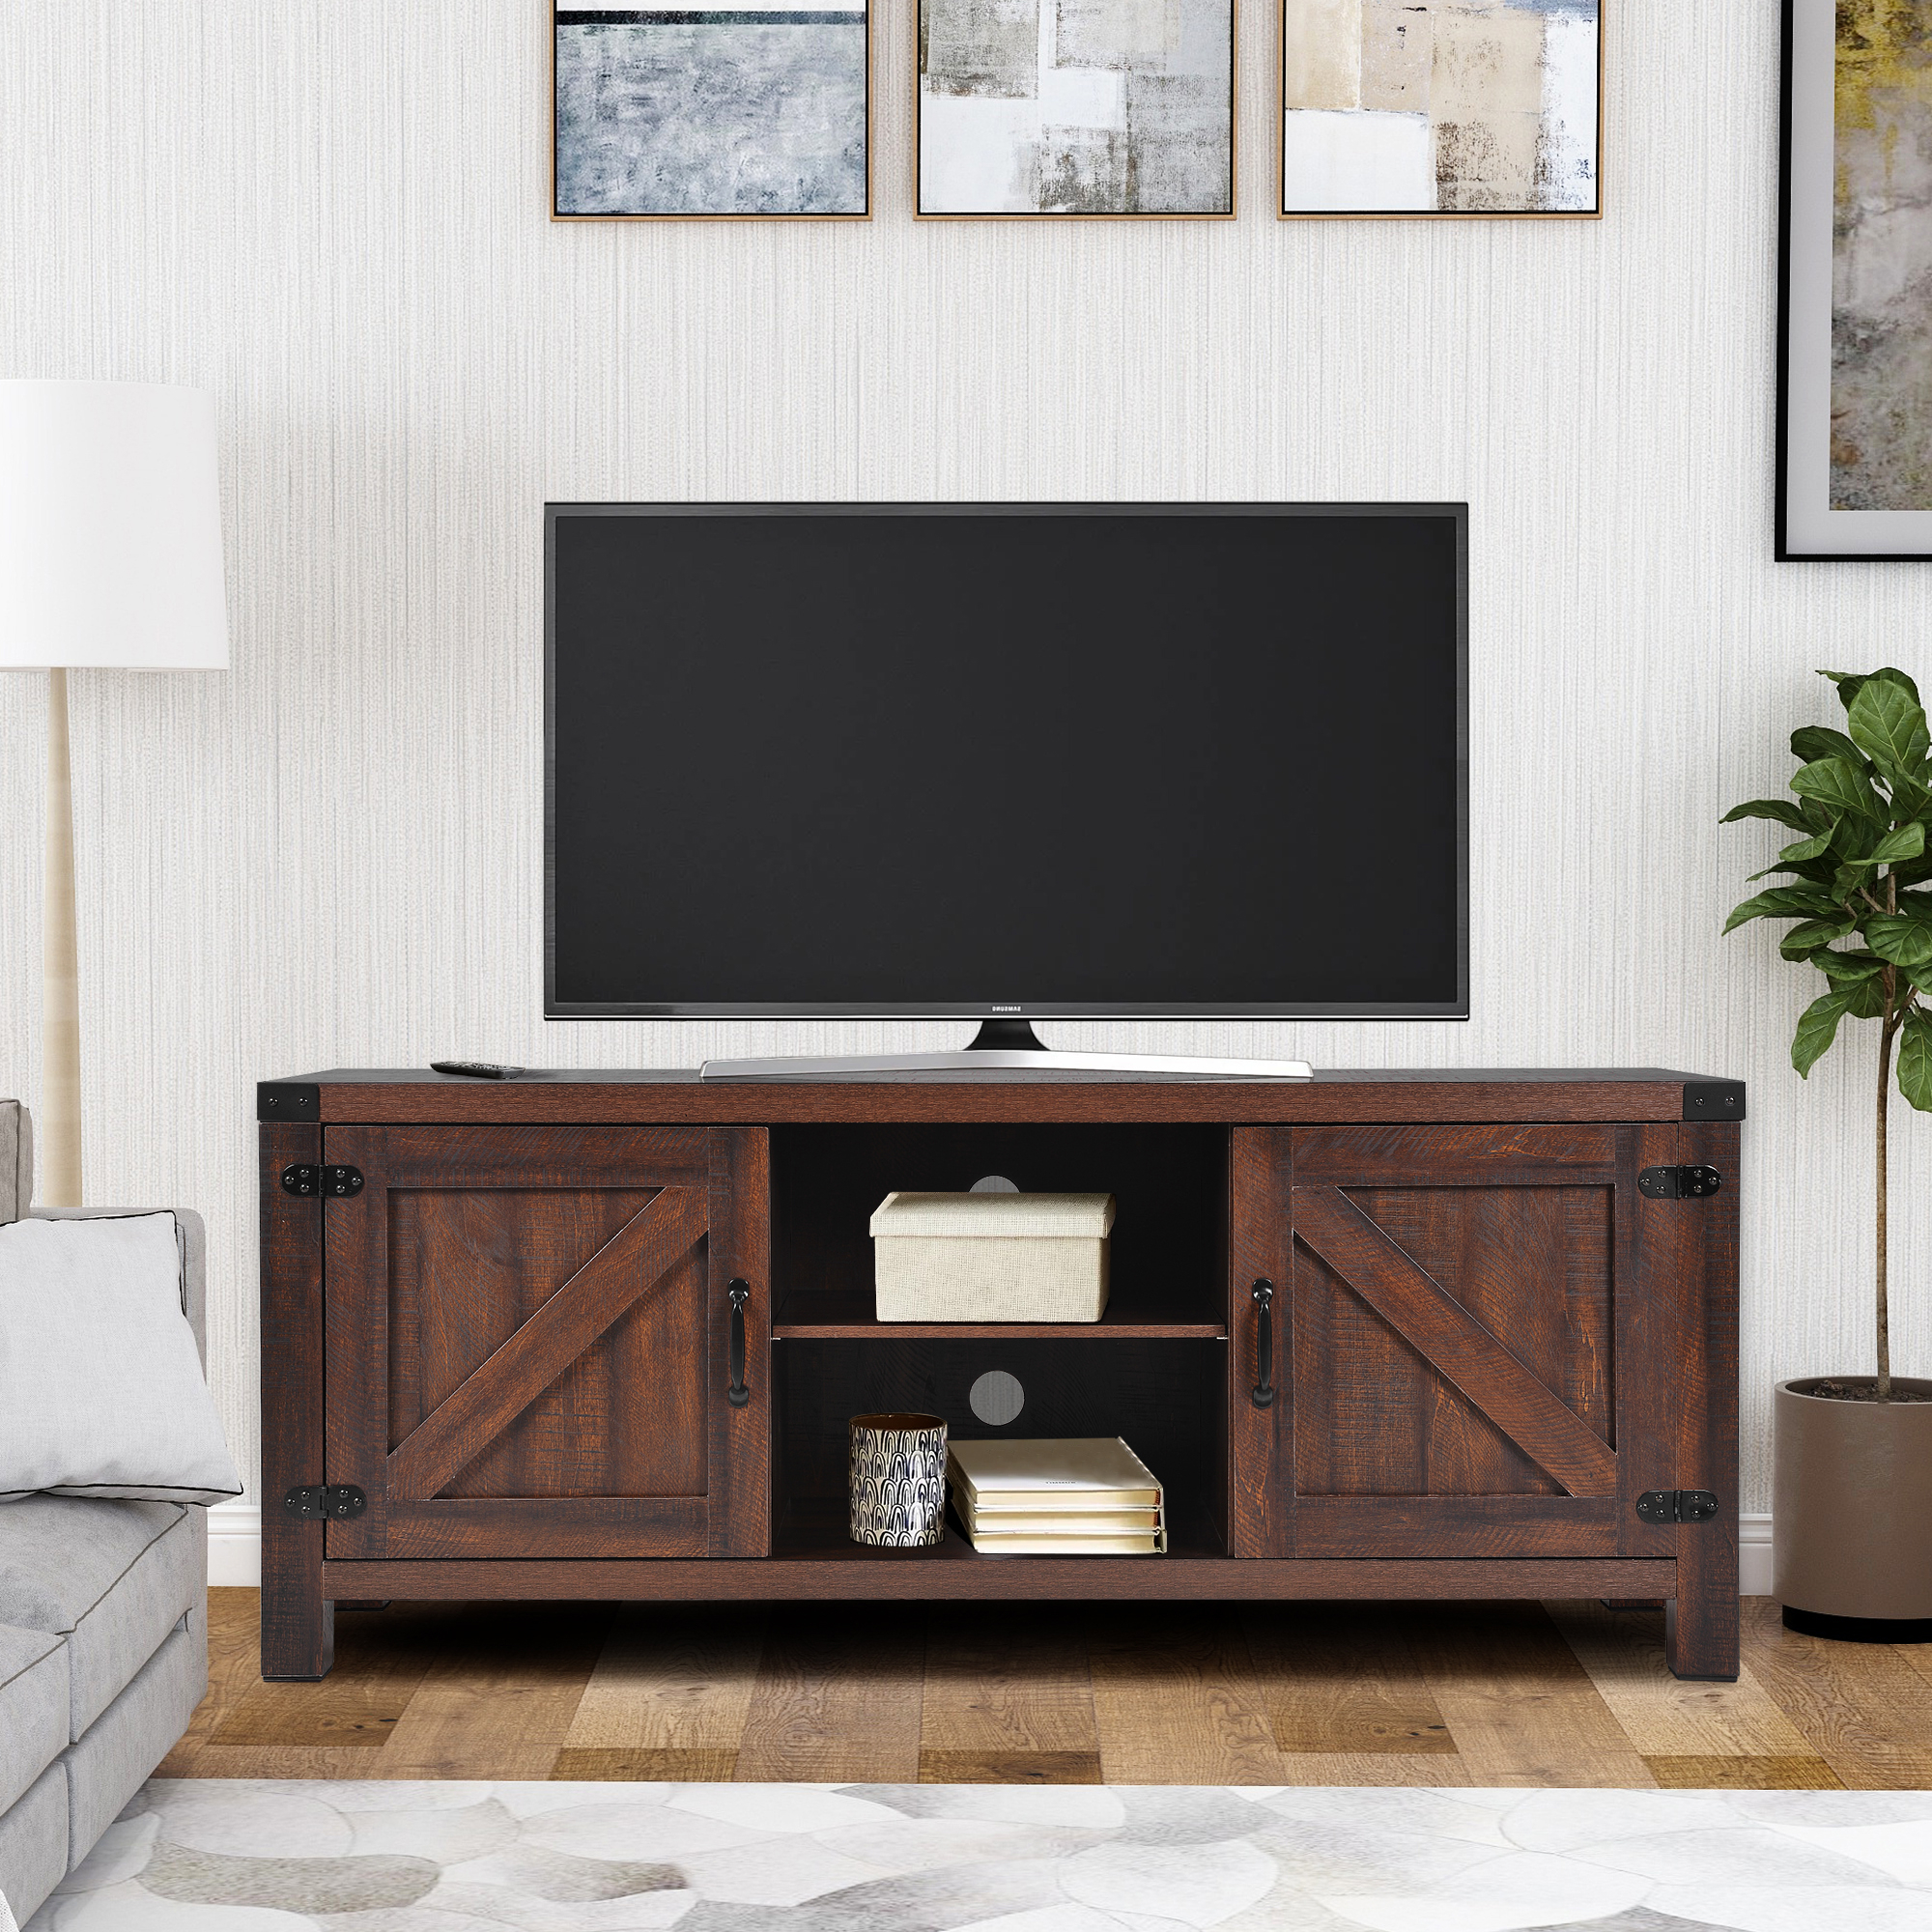 58 Inch Wood Tv Stand, Farmhouse Tv Stand With Fireplace Intended For Barn Door Wood Tv Stands (View 6 of 20)